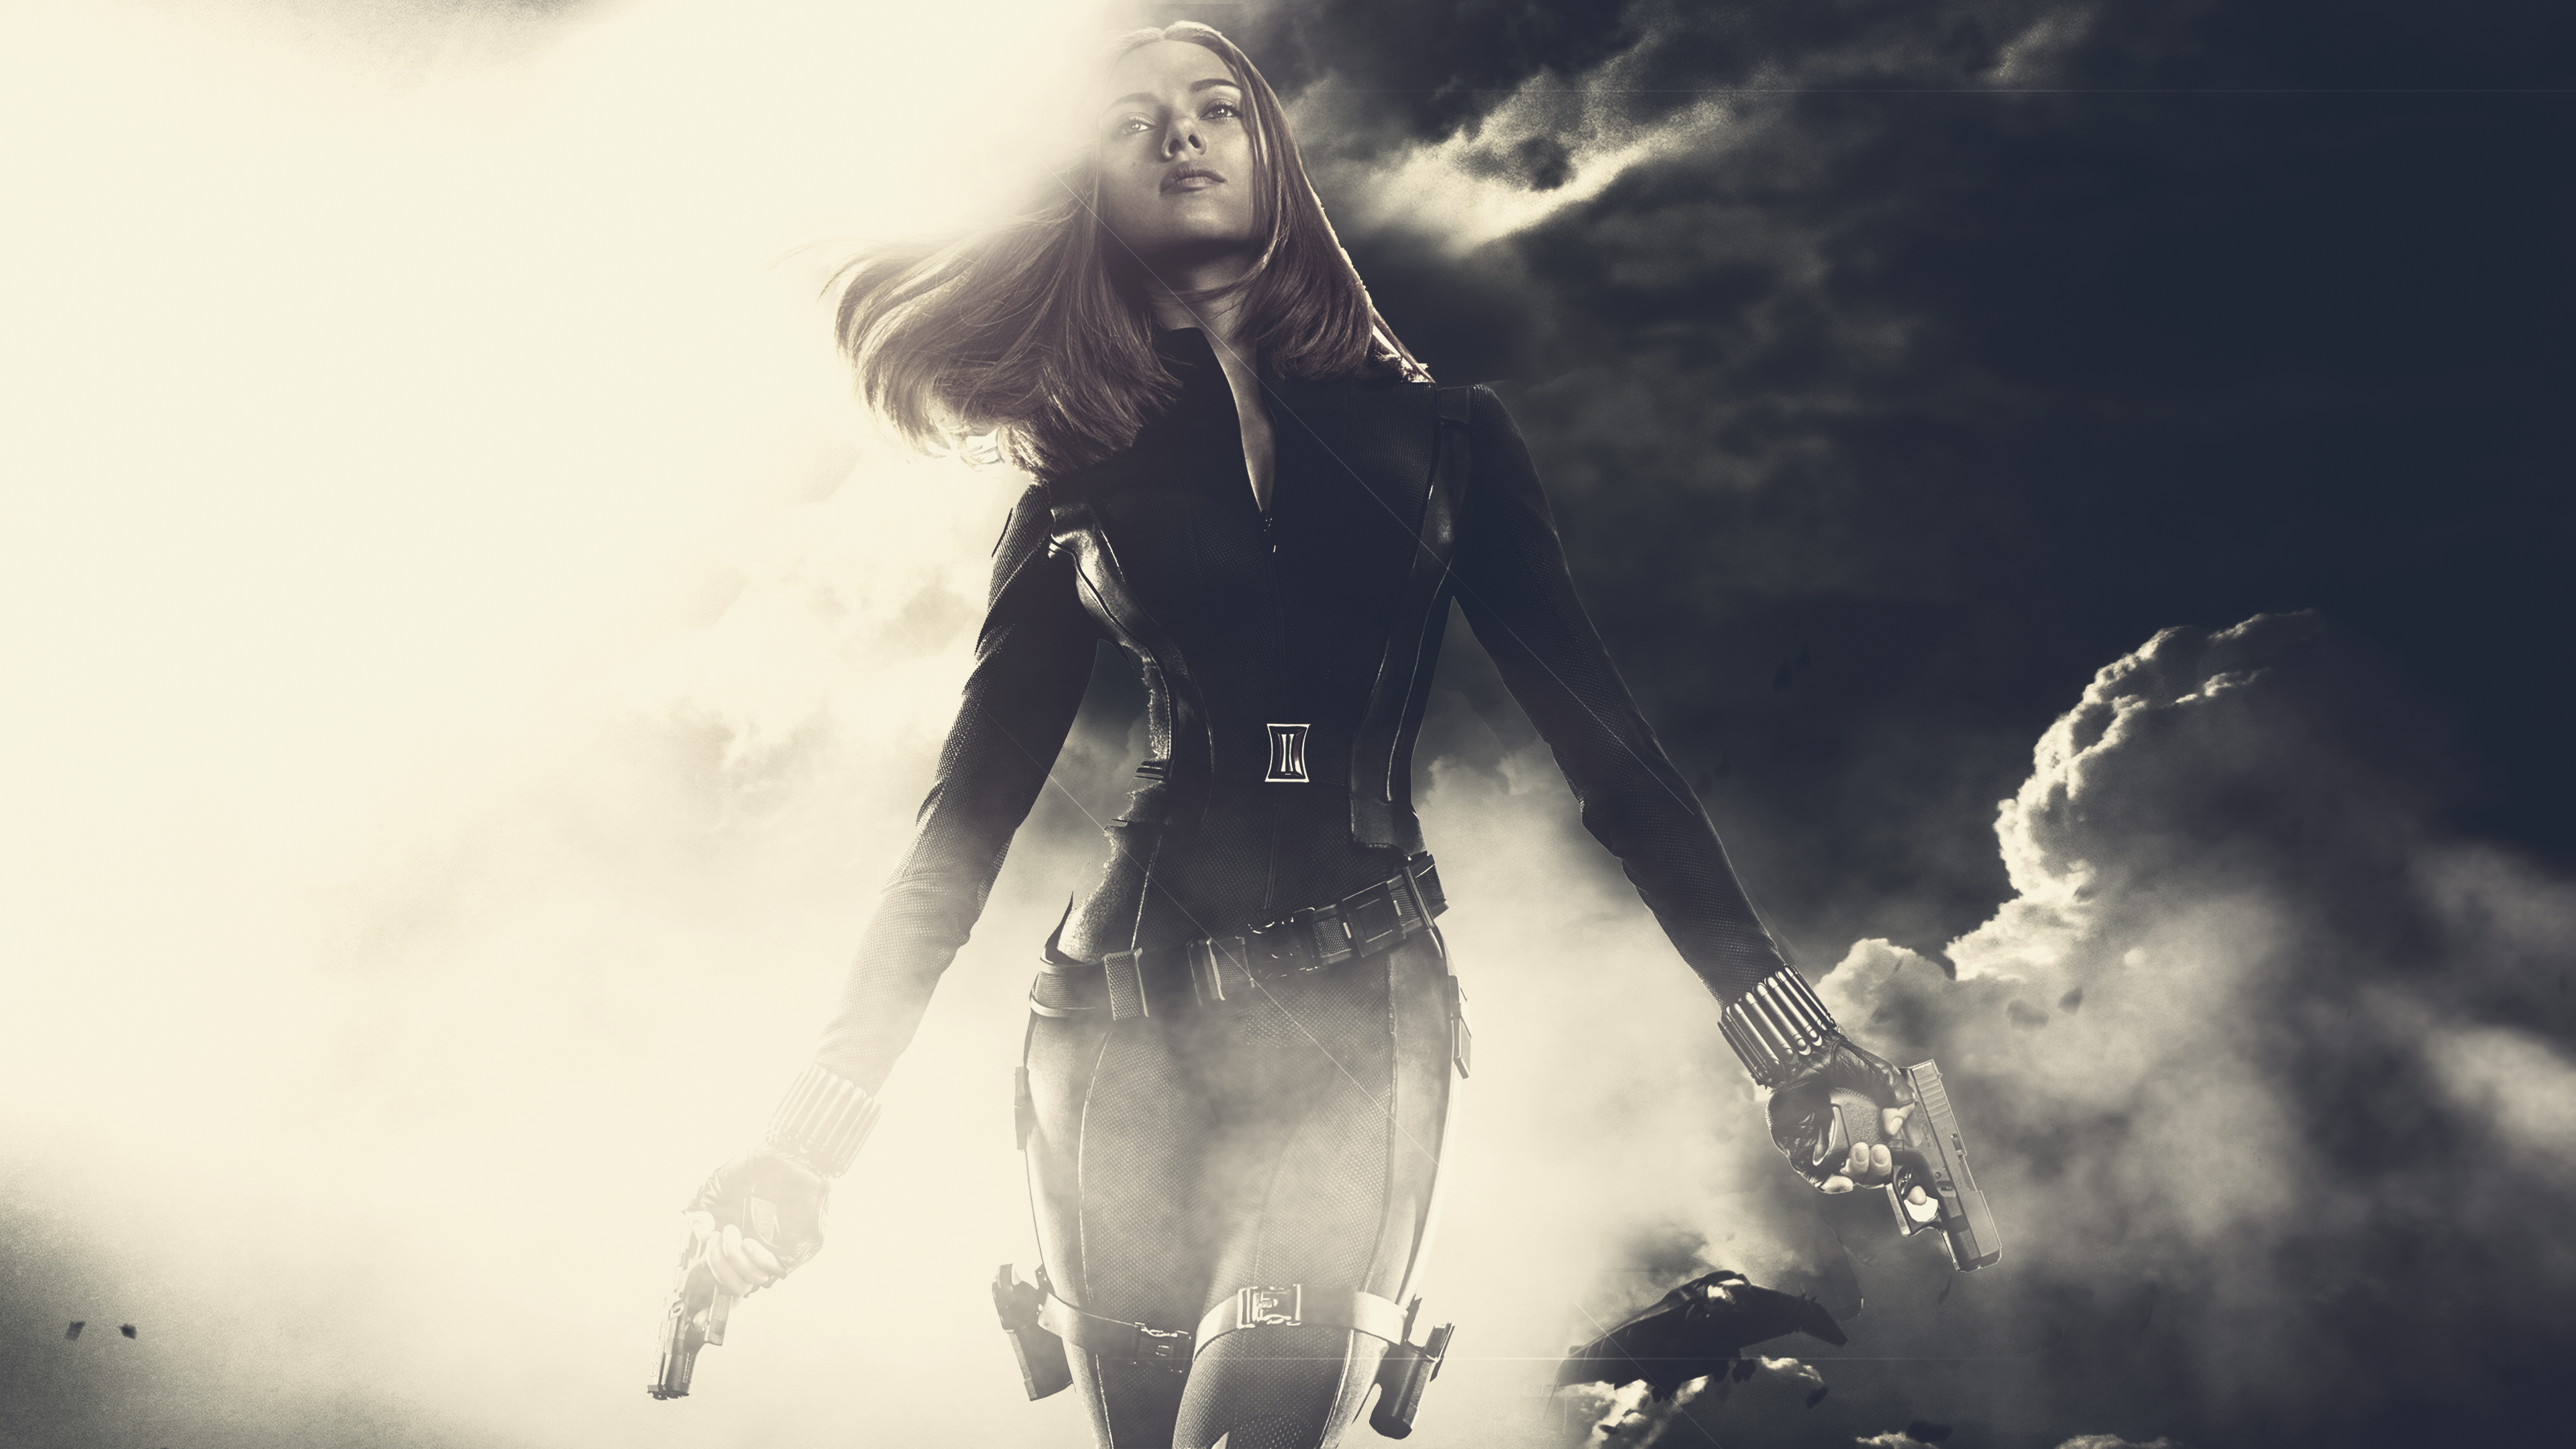 4k Wallpaper Wallpaper By Gstblack: Download Free HD Black Widow Desktop Wallpaper In 4K ...0049